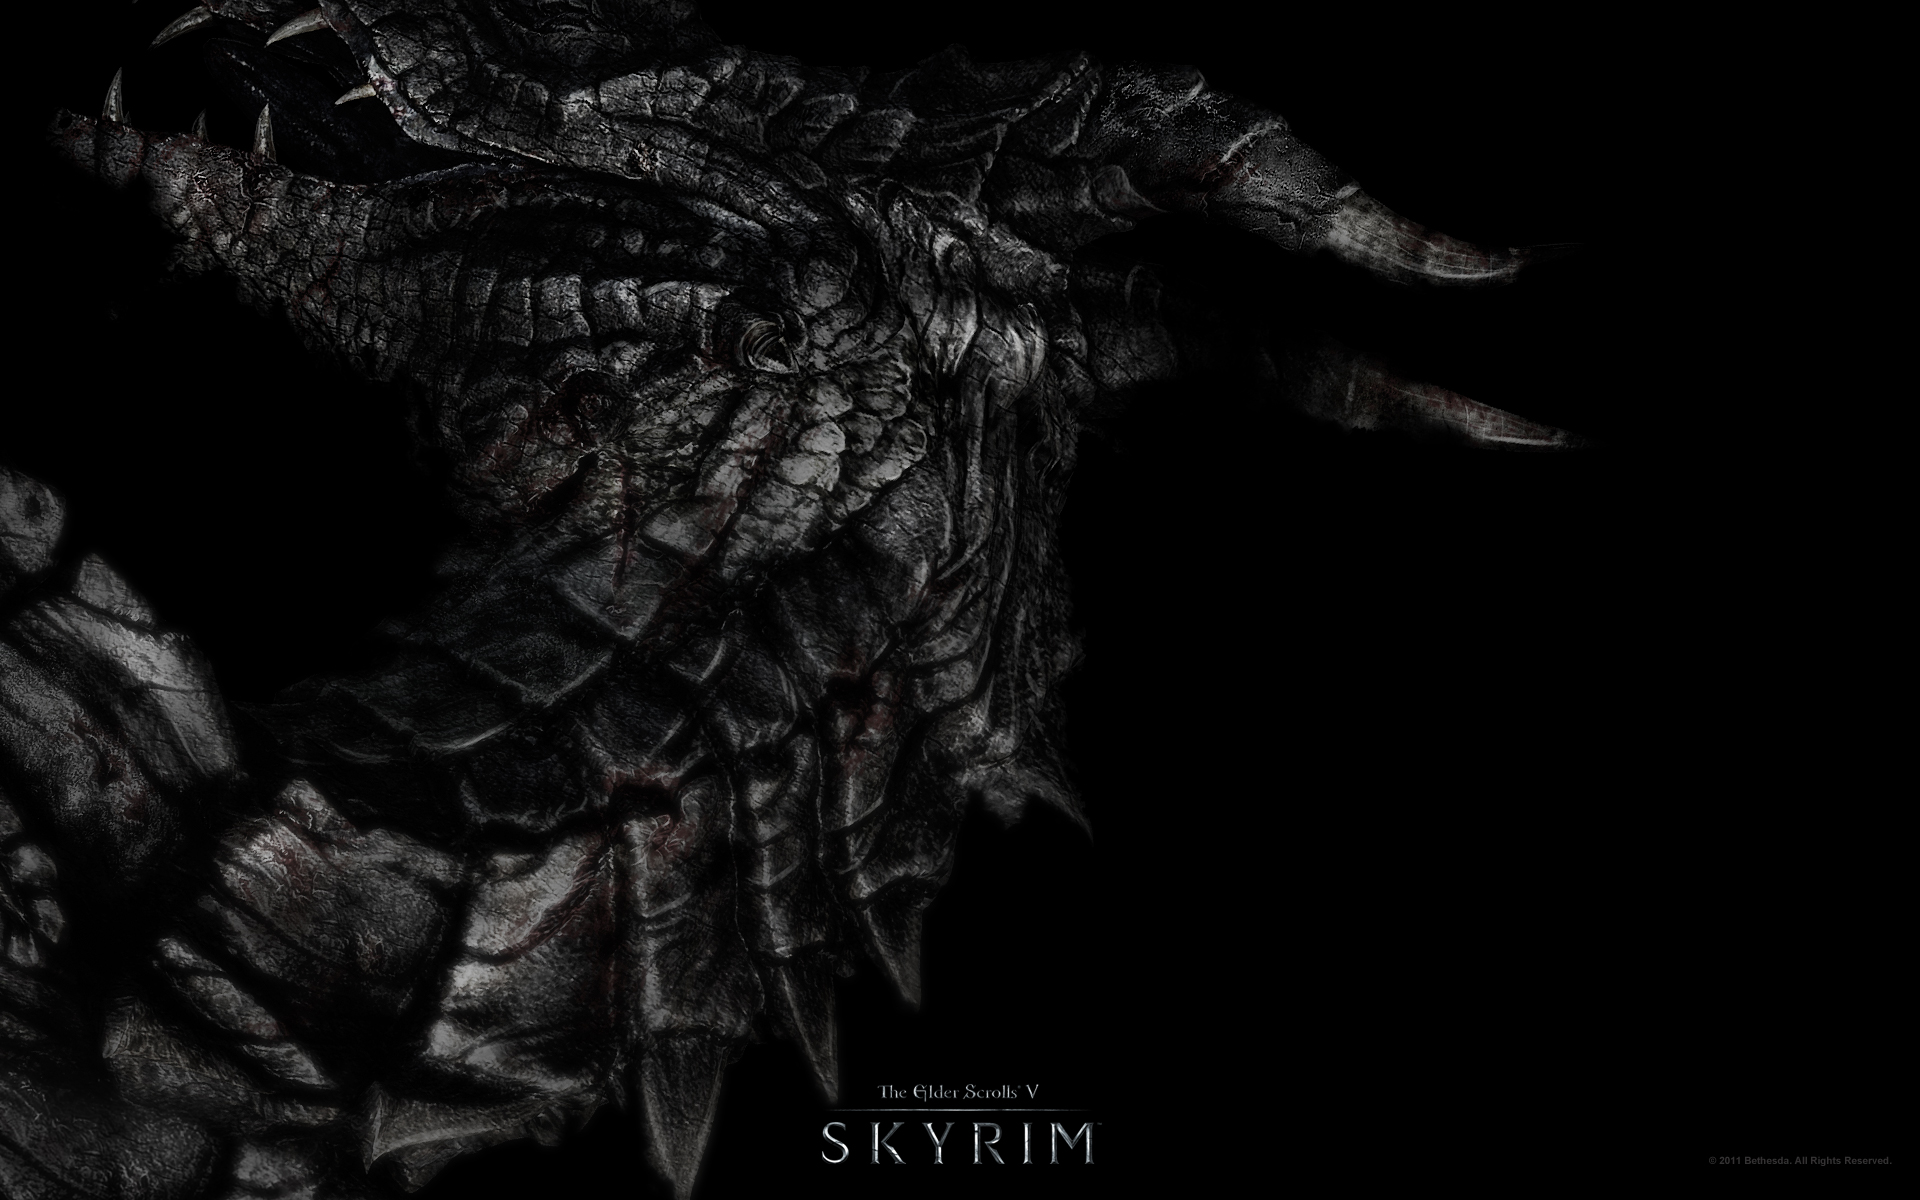 Skyrim wallpaper 2